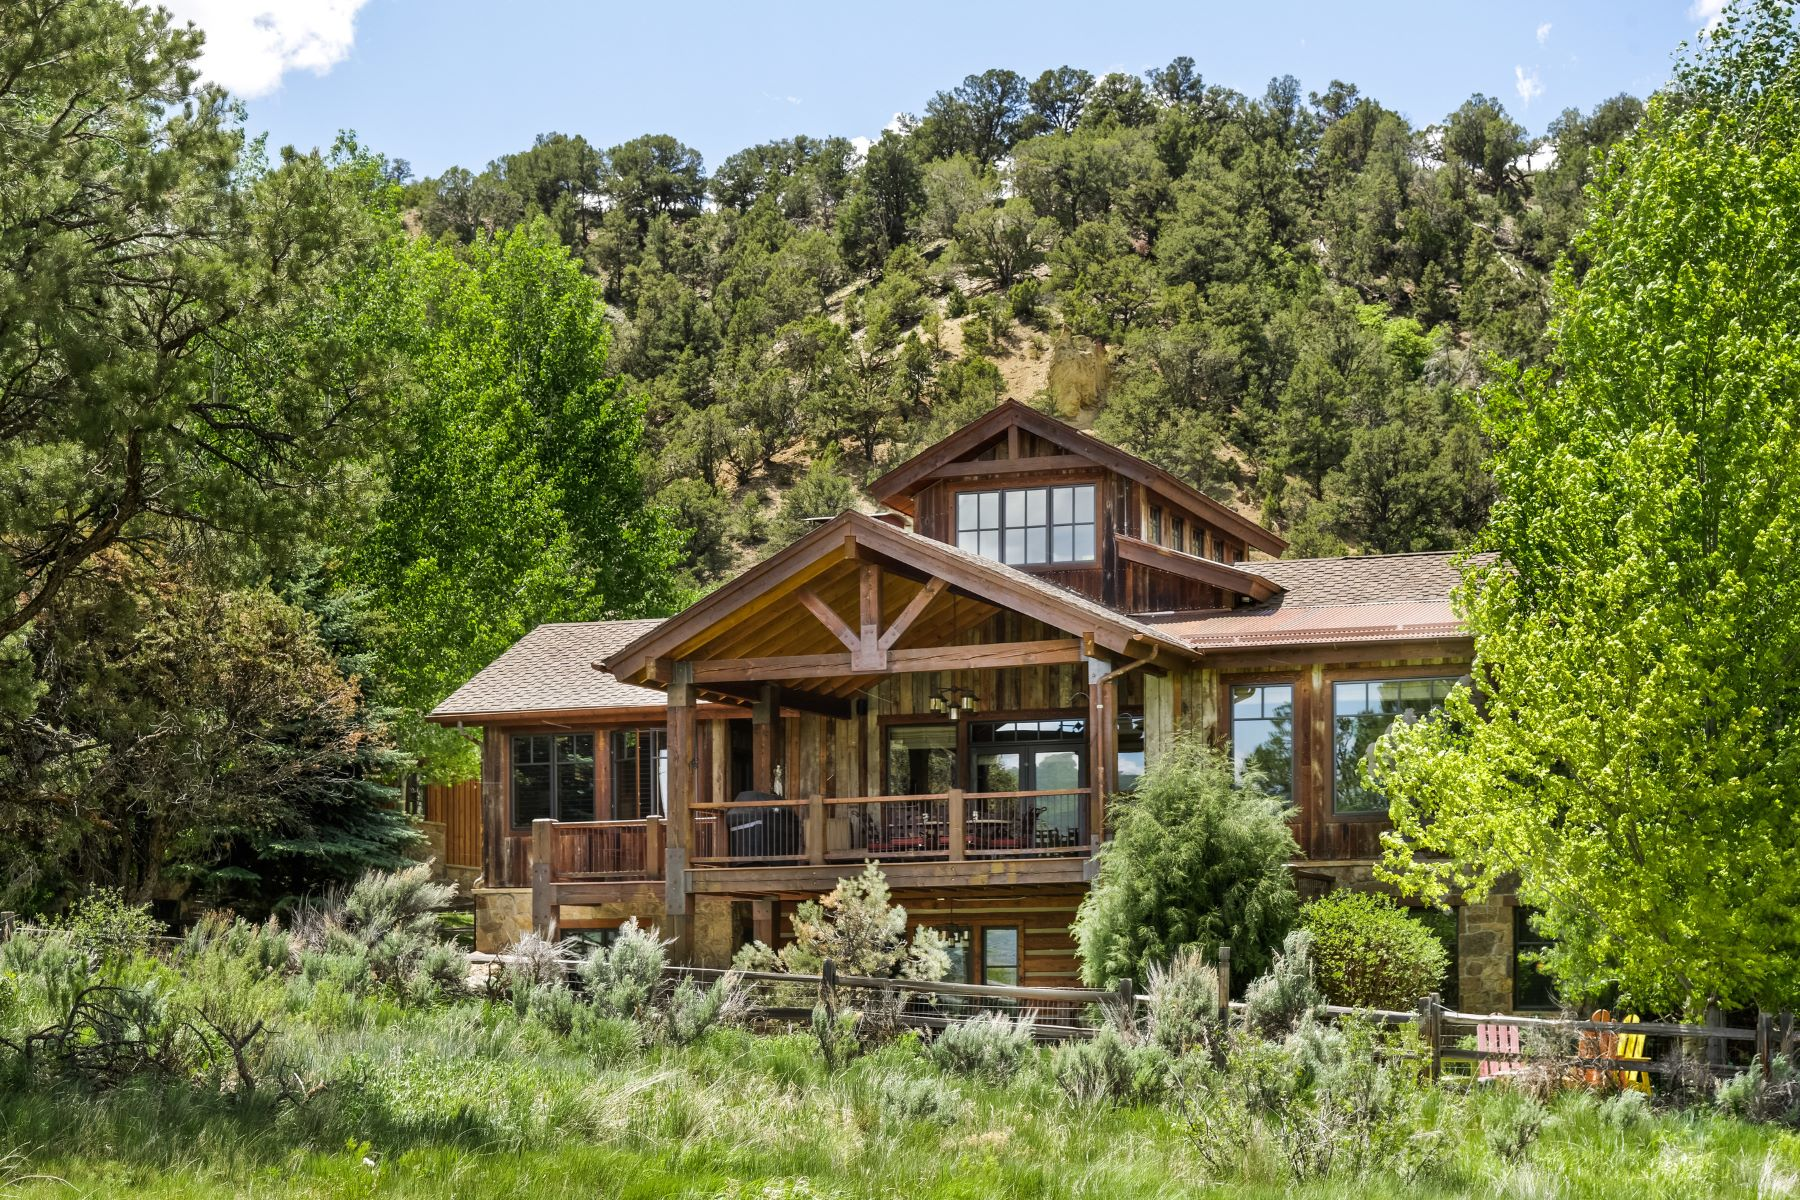 Casa Unifamiliar por un Venta en Classic Custom Mountain Home 3976 Crystal Bridge Drive Carbondale, Colorado 81623 Estados Unidos